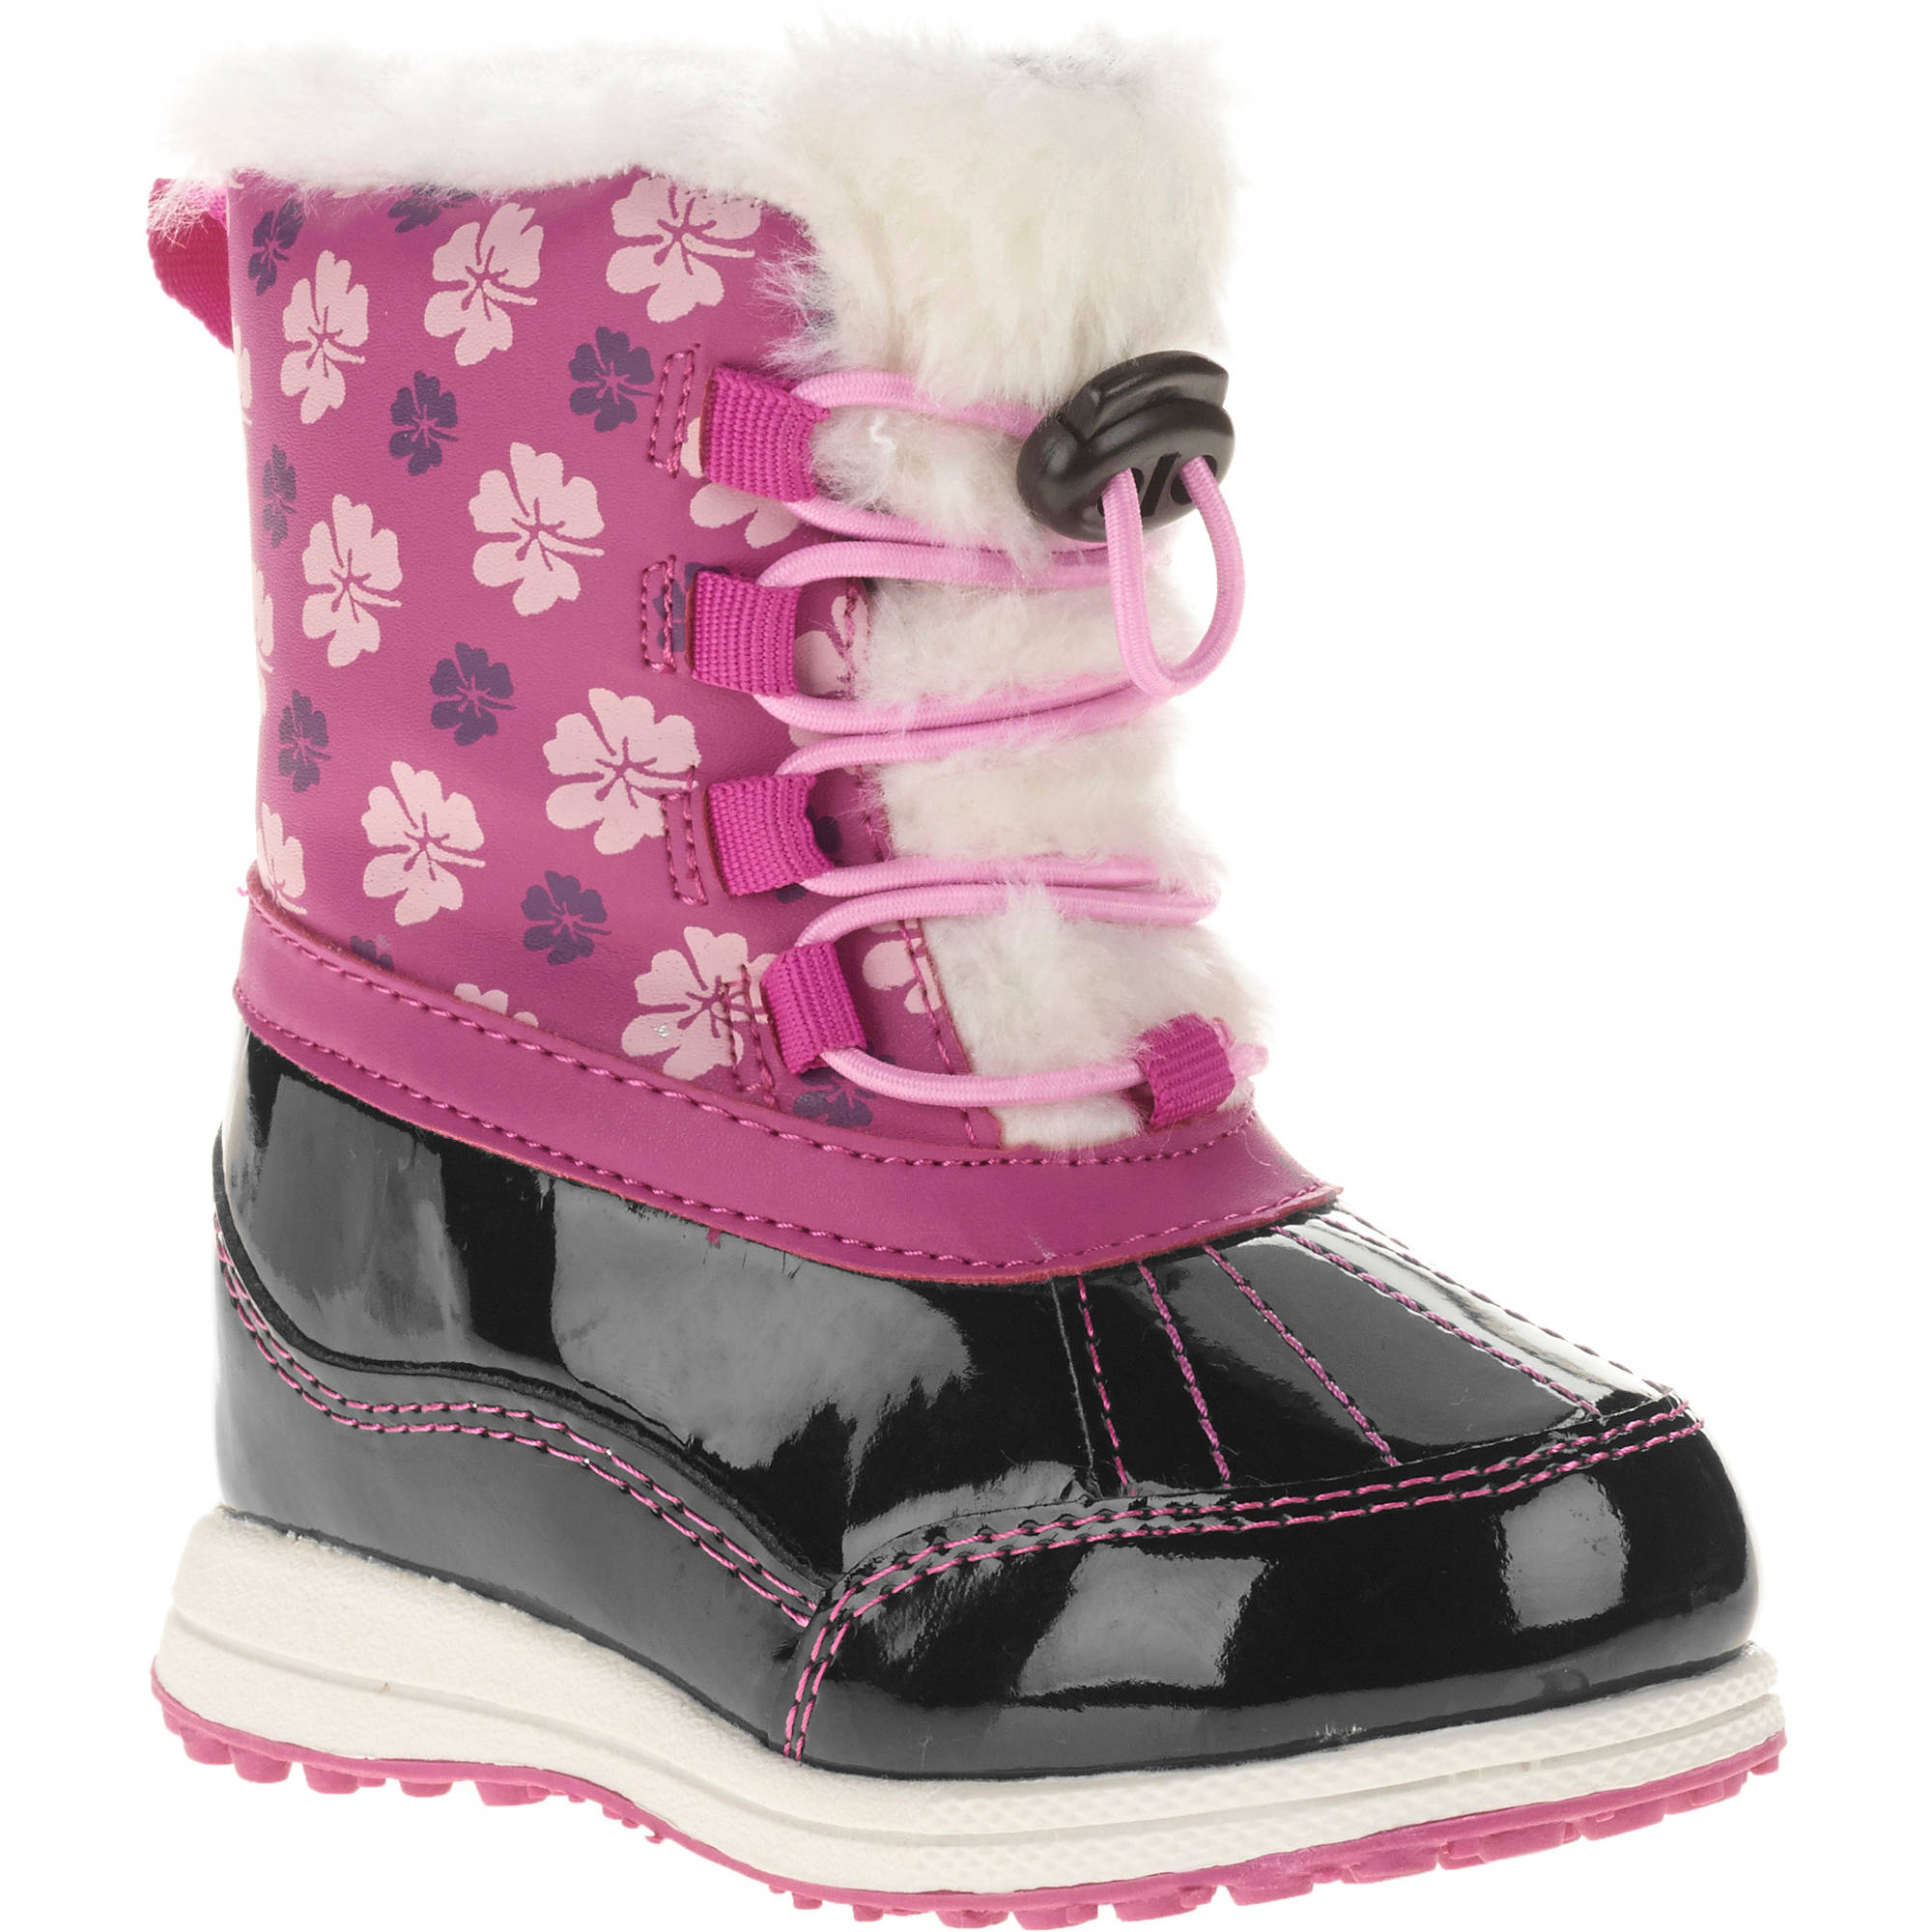 Find great deals on Girls Toddlers Boots at Kohl's today! Sponsored Links Outside companies pay to advertise via these links when specific phrases and words are searched. Clicking on these links will open a new tab displaying that respective companys own website. totes Star Toddler Girls' Winter Boots. sale. $ Original $ Jumping.